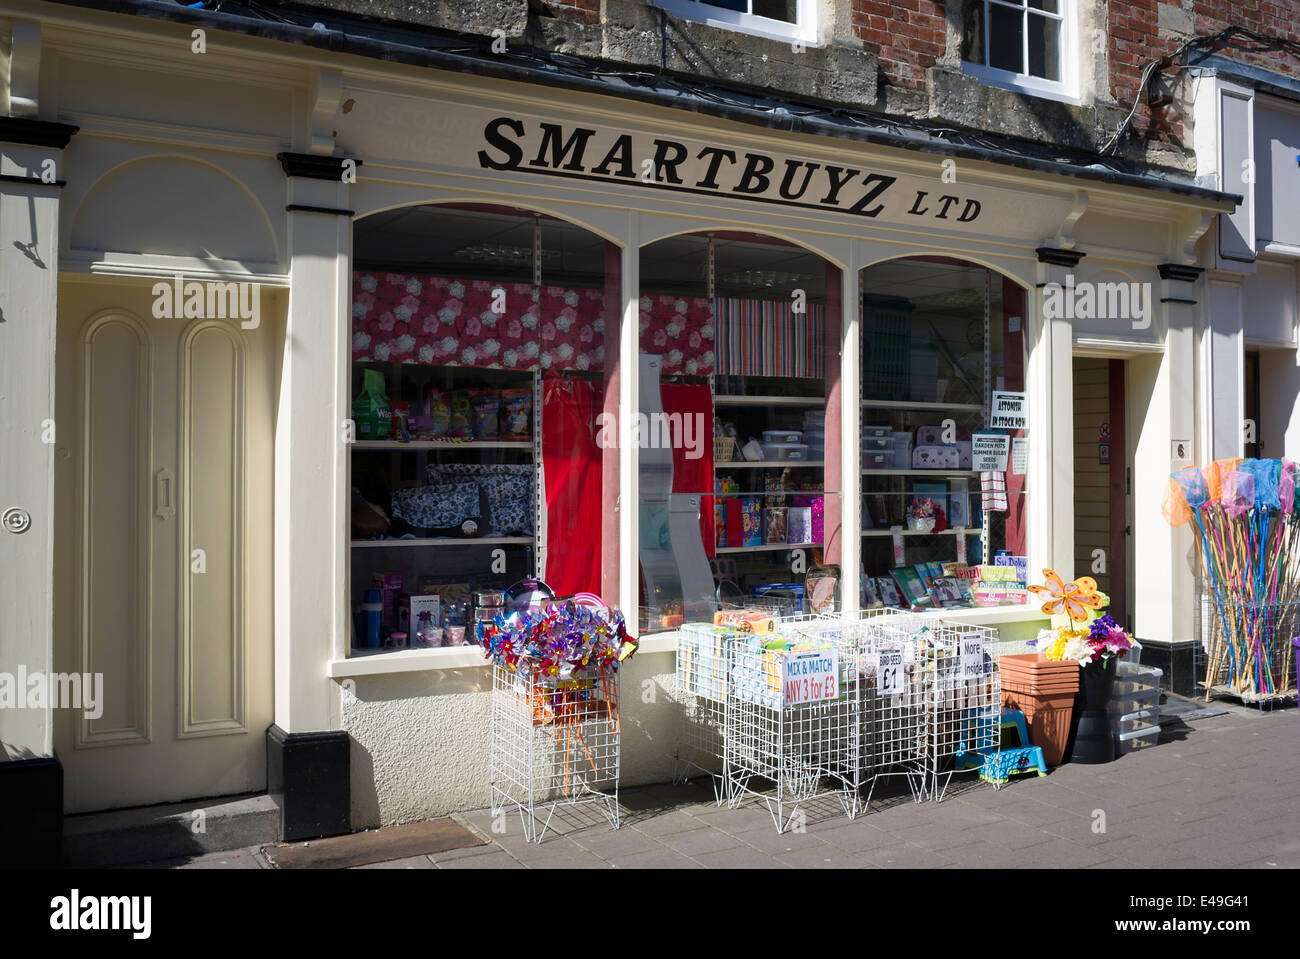 SMARTBUYZ budget shop in Devizes UK - Stock Image